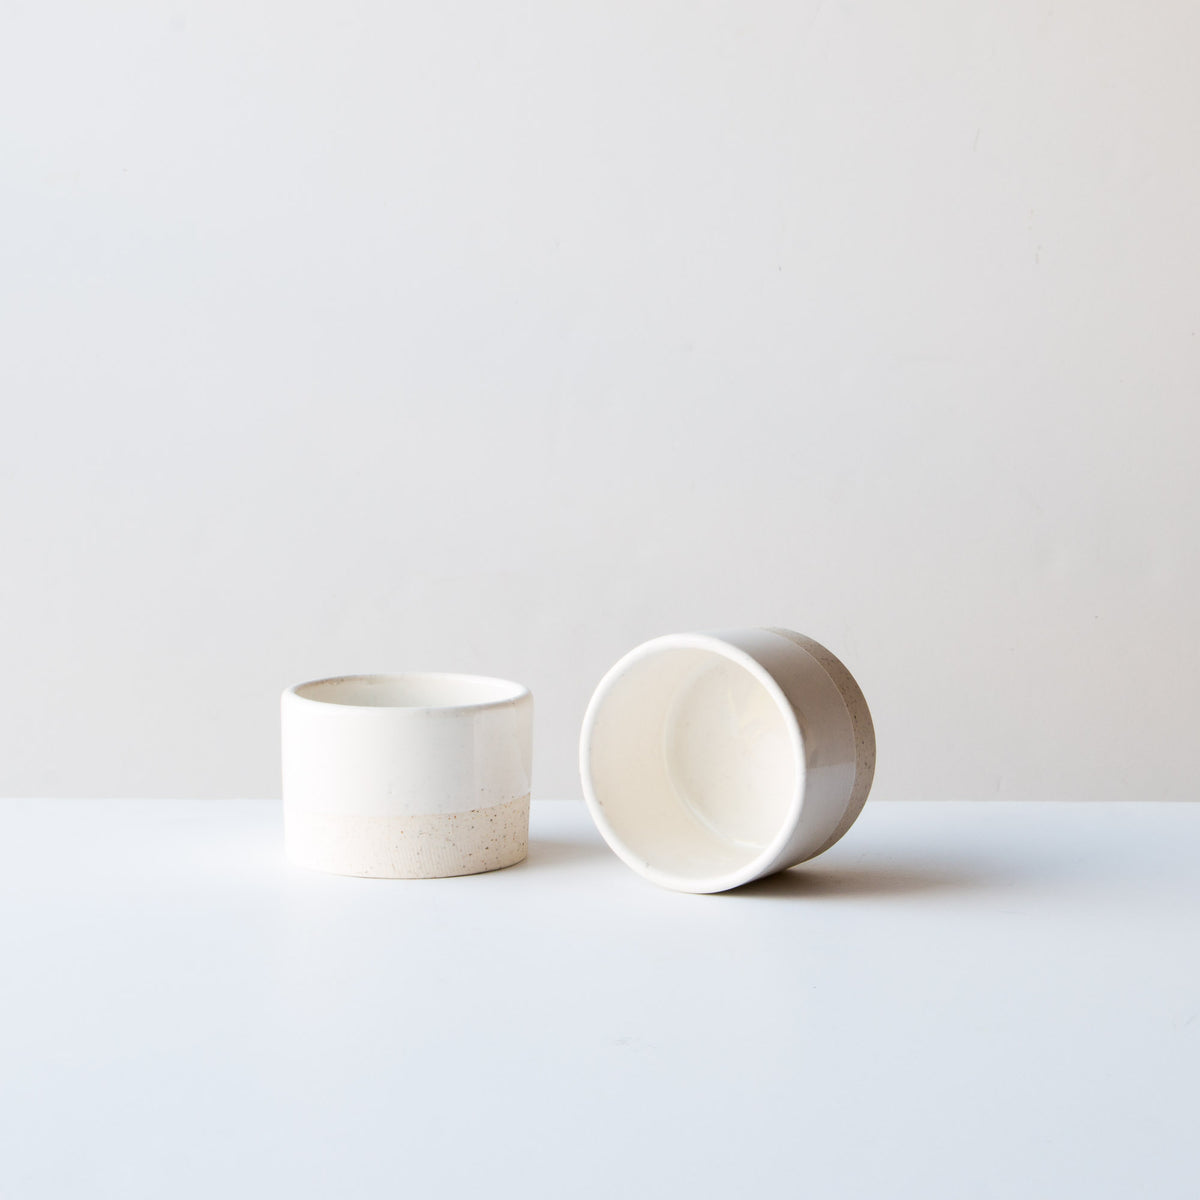 Two Oatmeal Clay - Soft White Glaze - 6 oz / 200 ml Handmade Ceramic Ramekin - Made in Canada - Shop Online